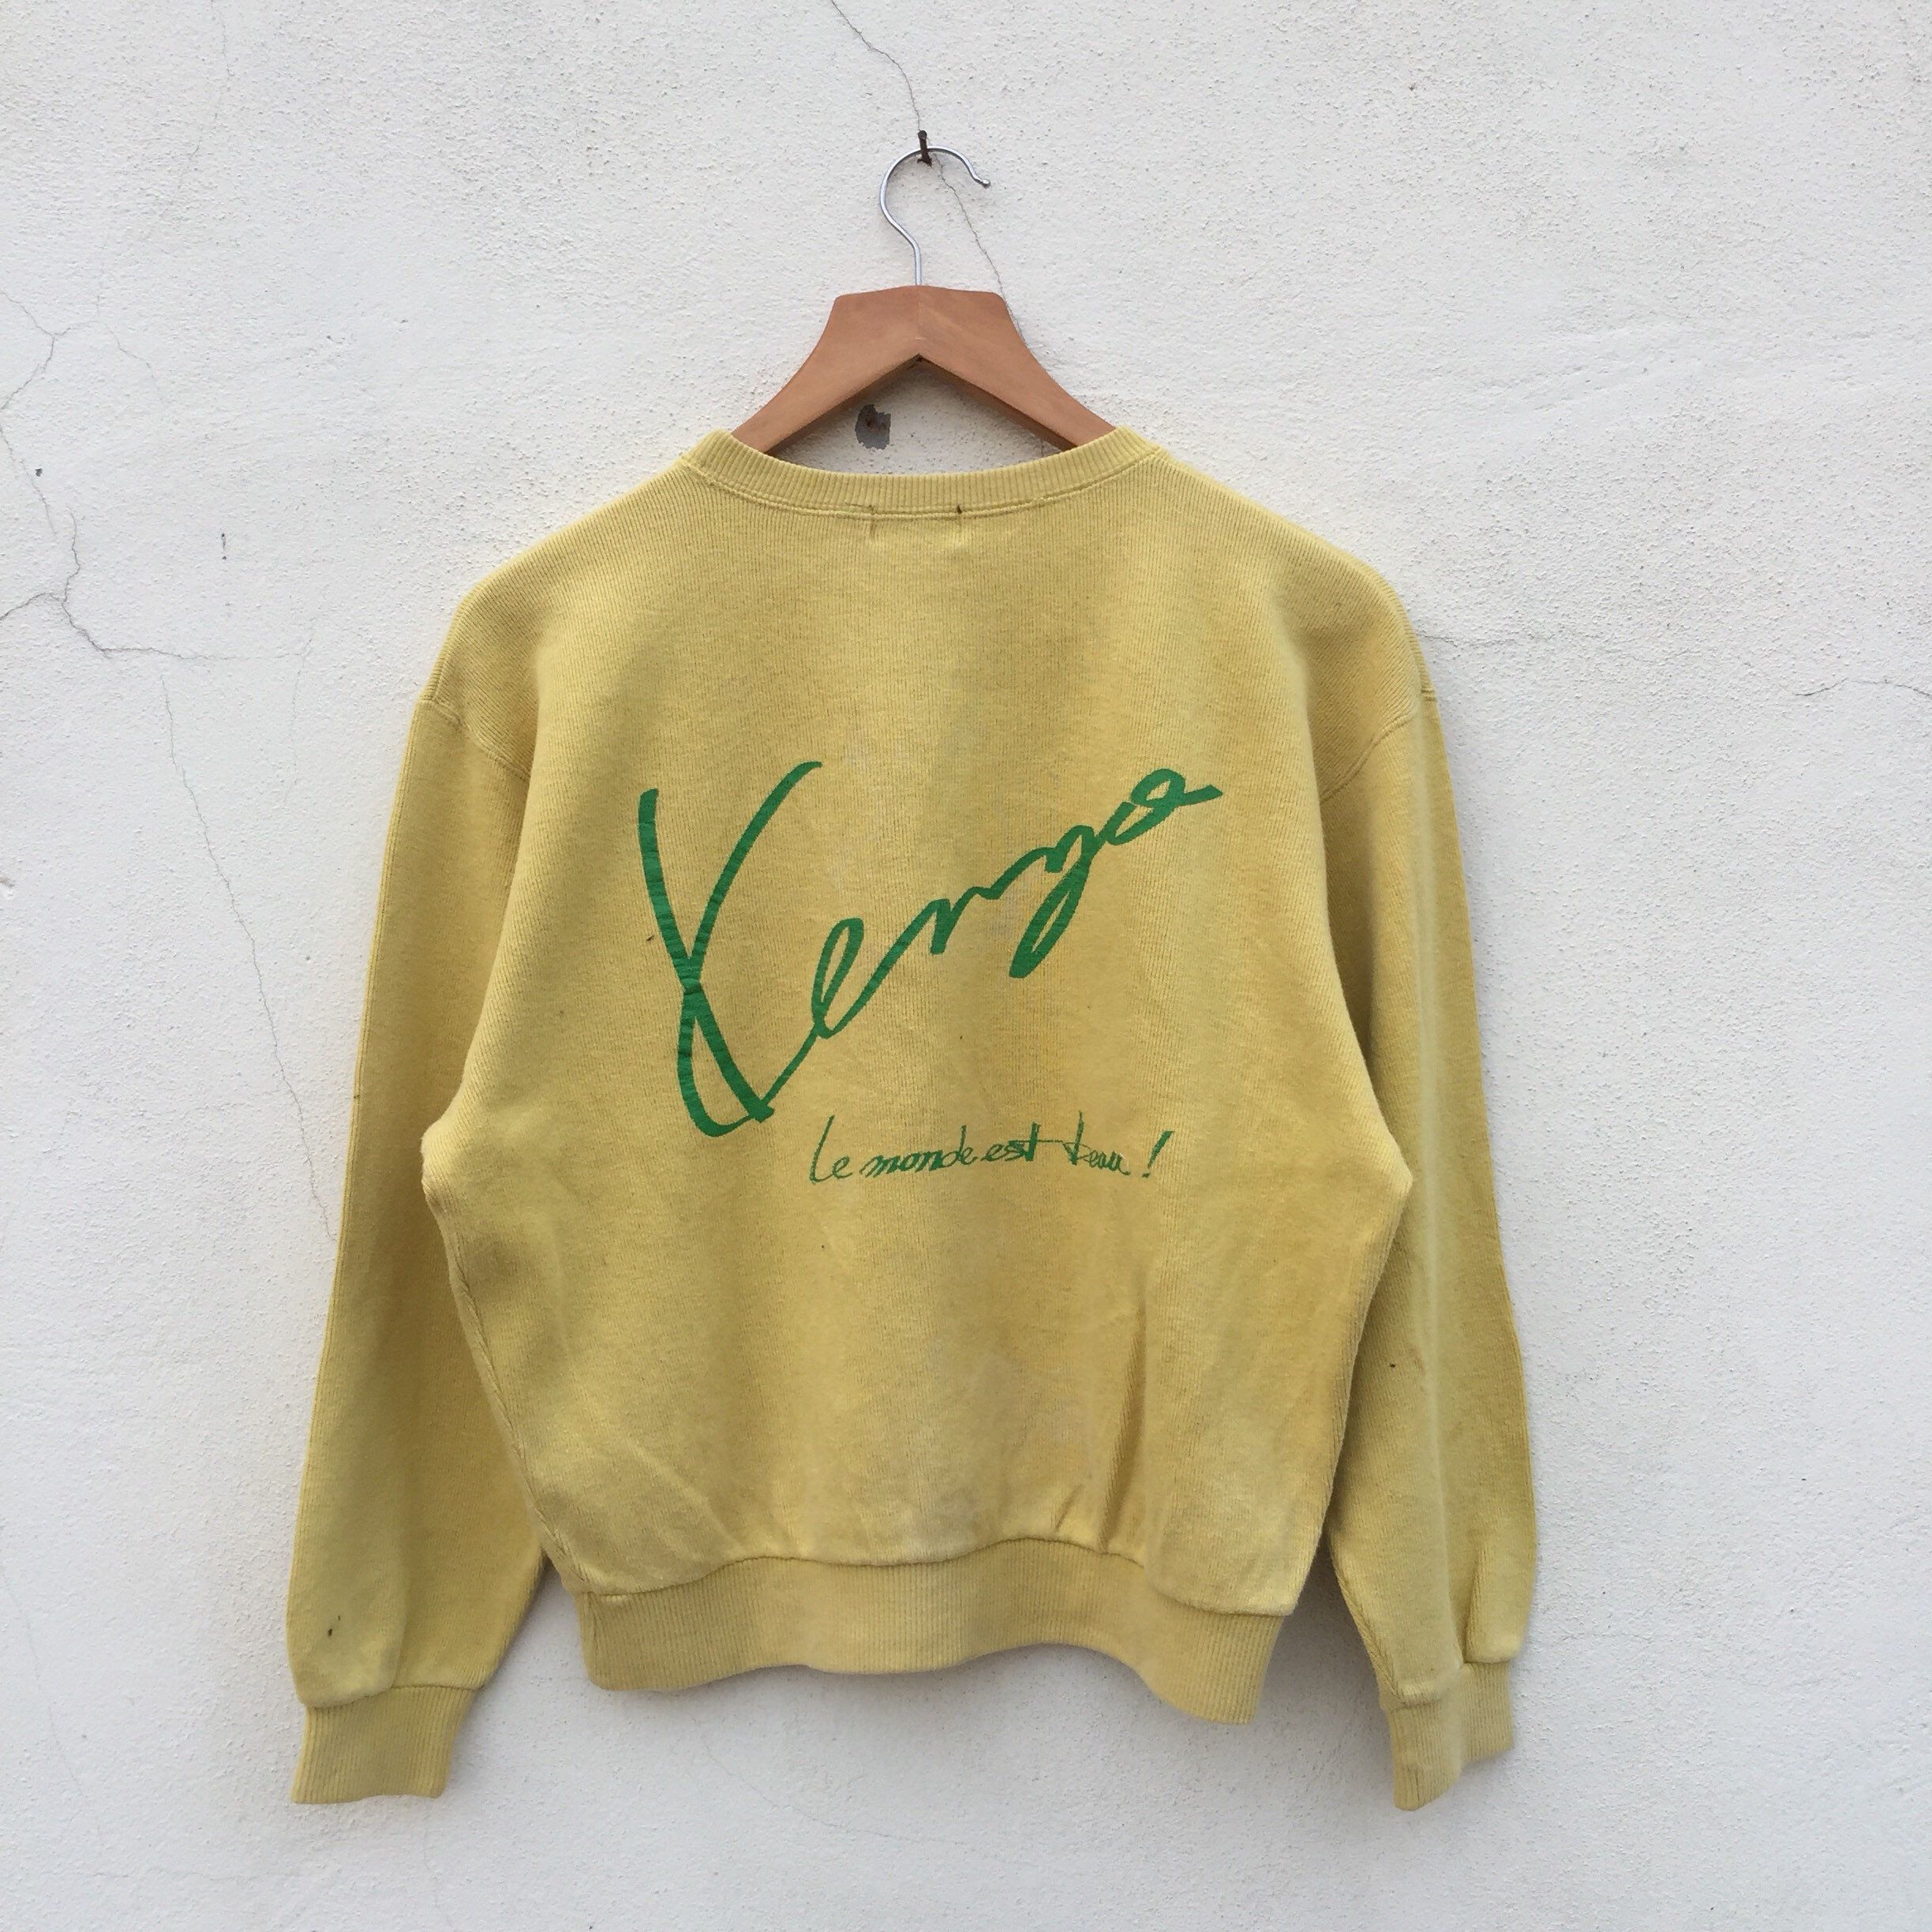 9d3b4f25 Excited to share this item from my #etsy shop: Vintage 90s KENZO PARIS  yellow mustard colour sweatshirt big logo crewneck kenzo sweatshirt jumper  pullover ...